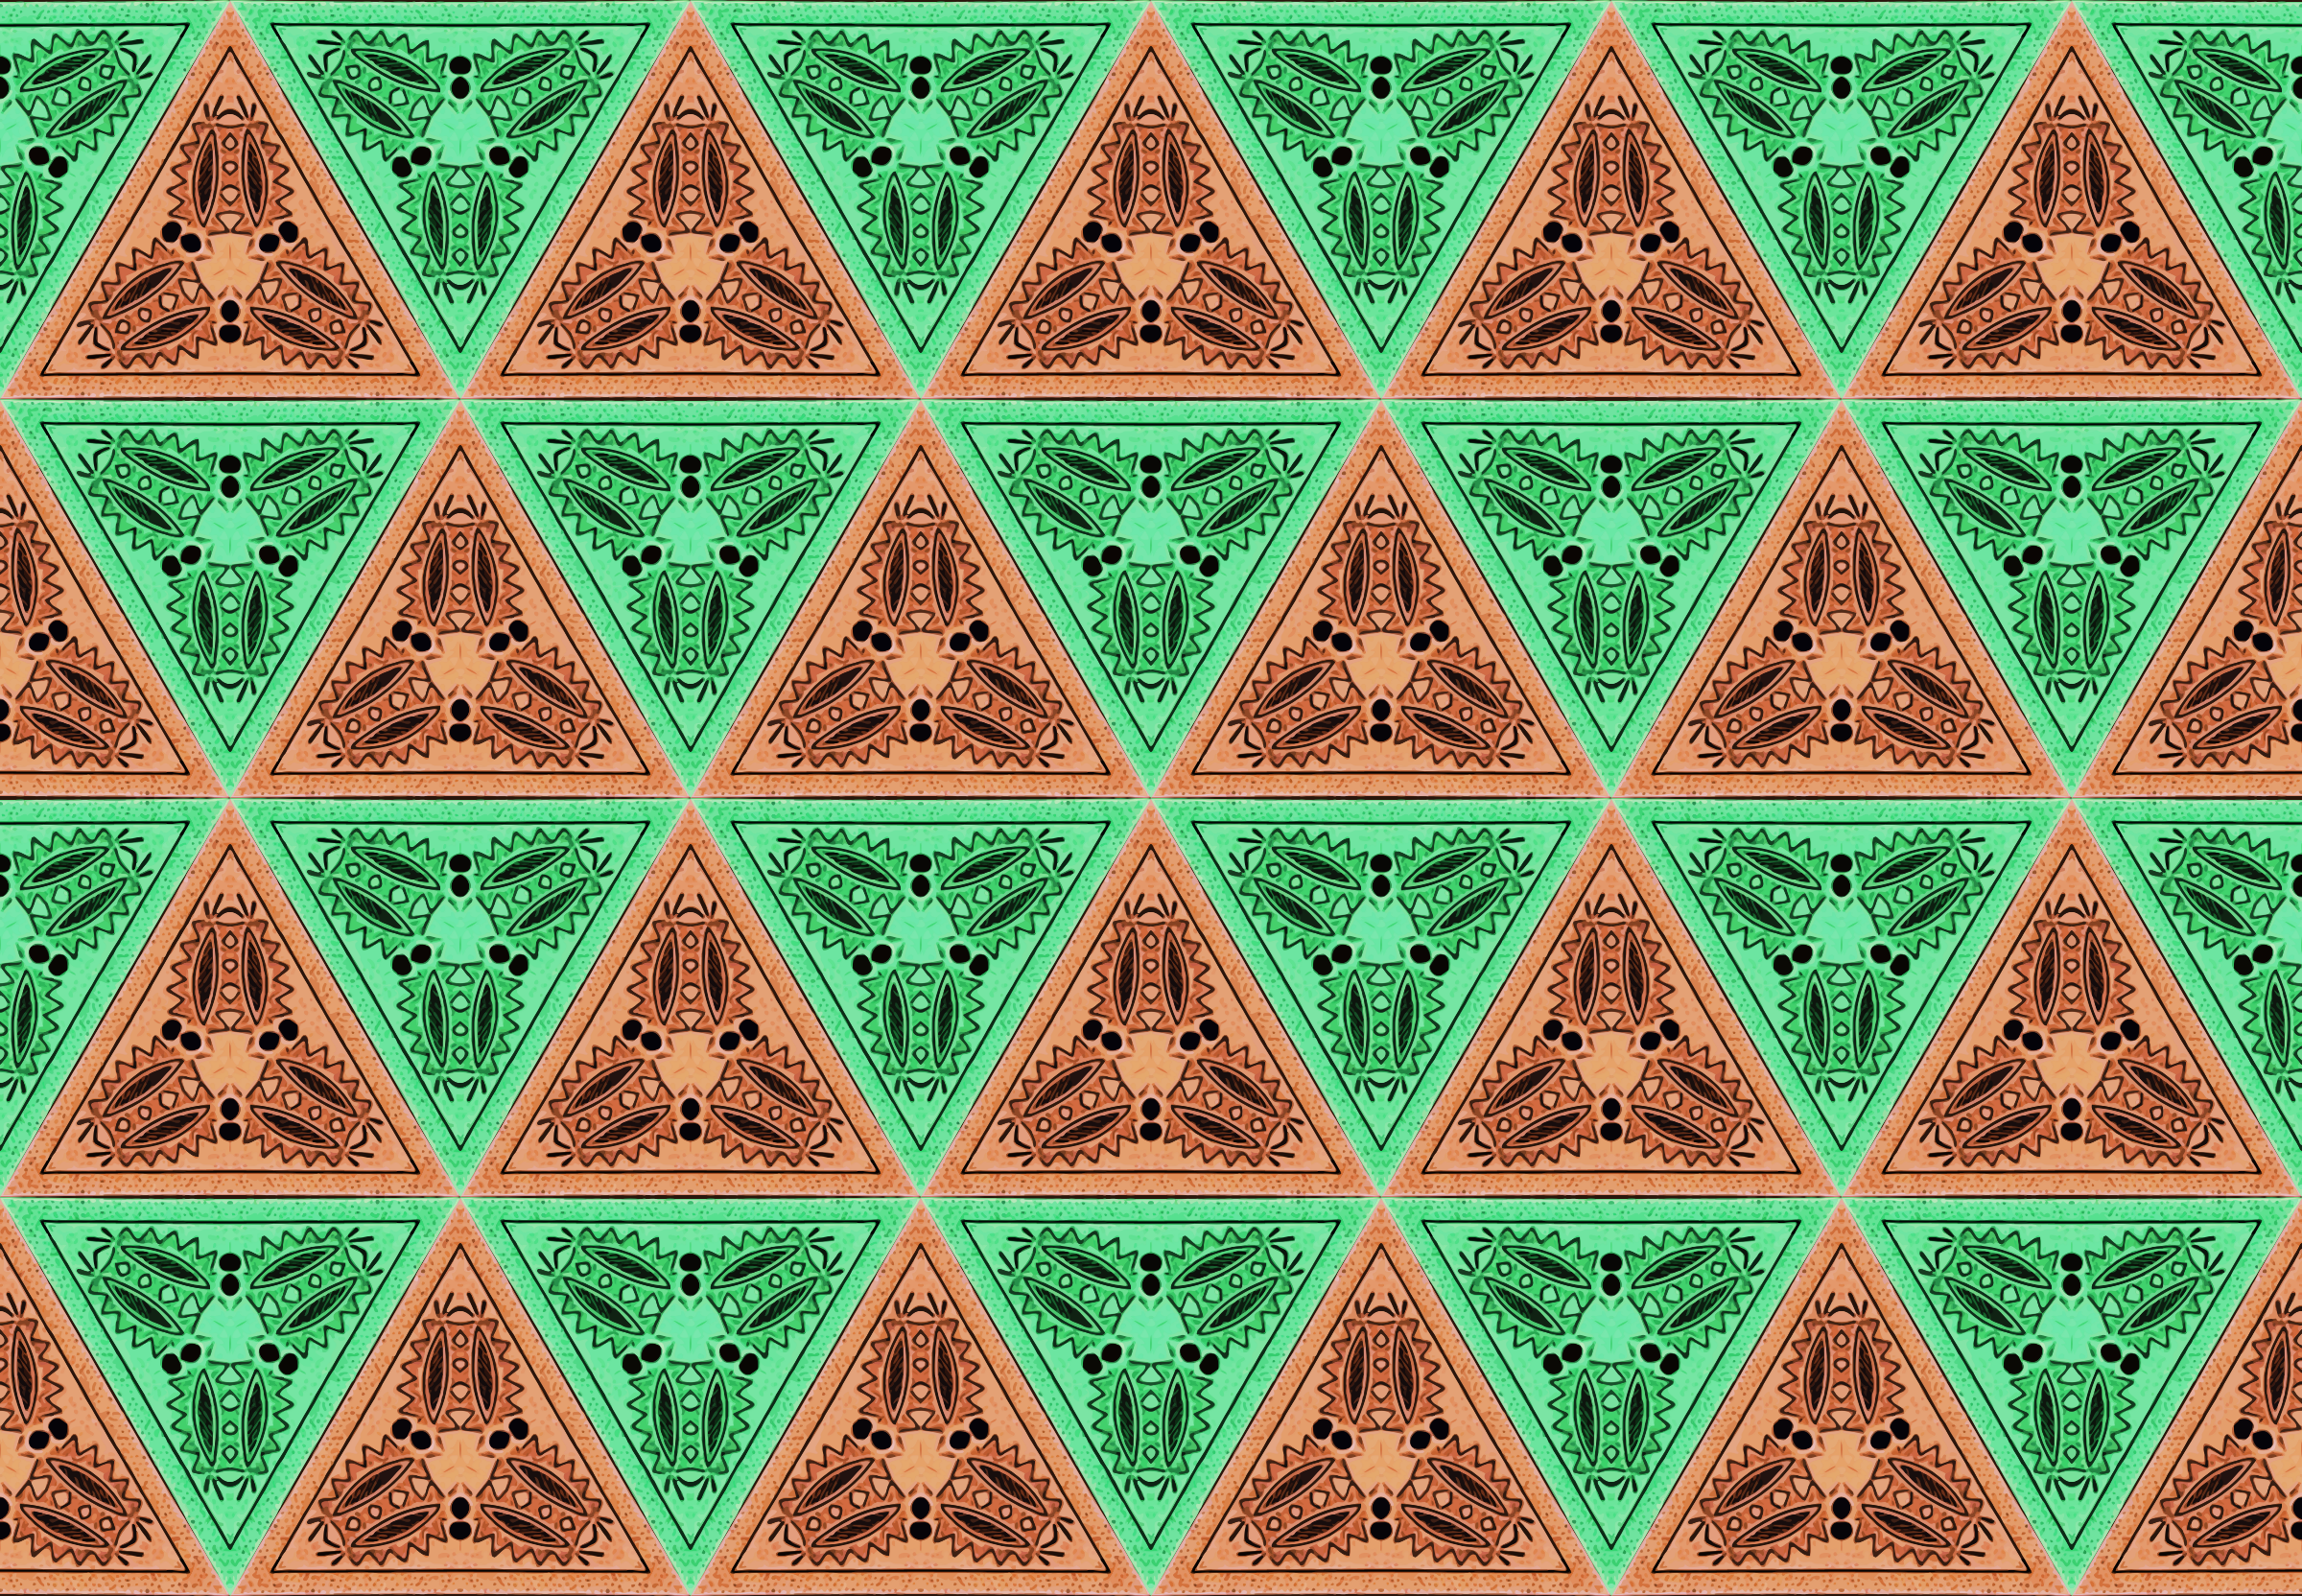 Background pattern 306 (colour 5) by Firkin